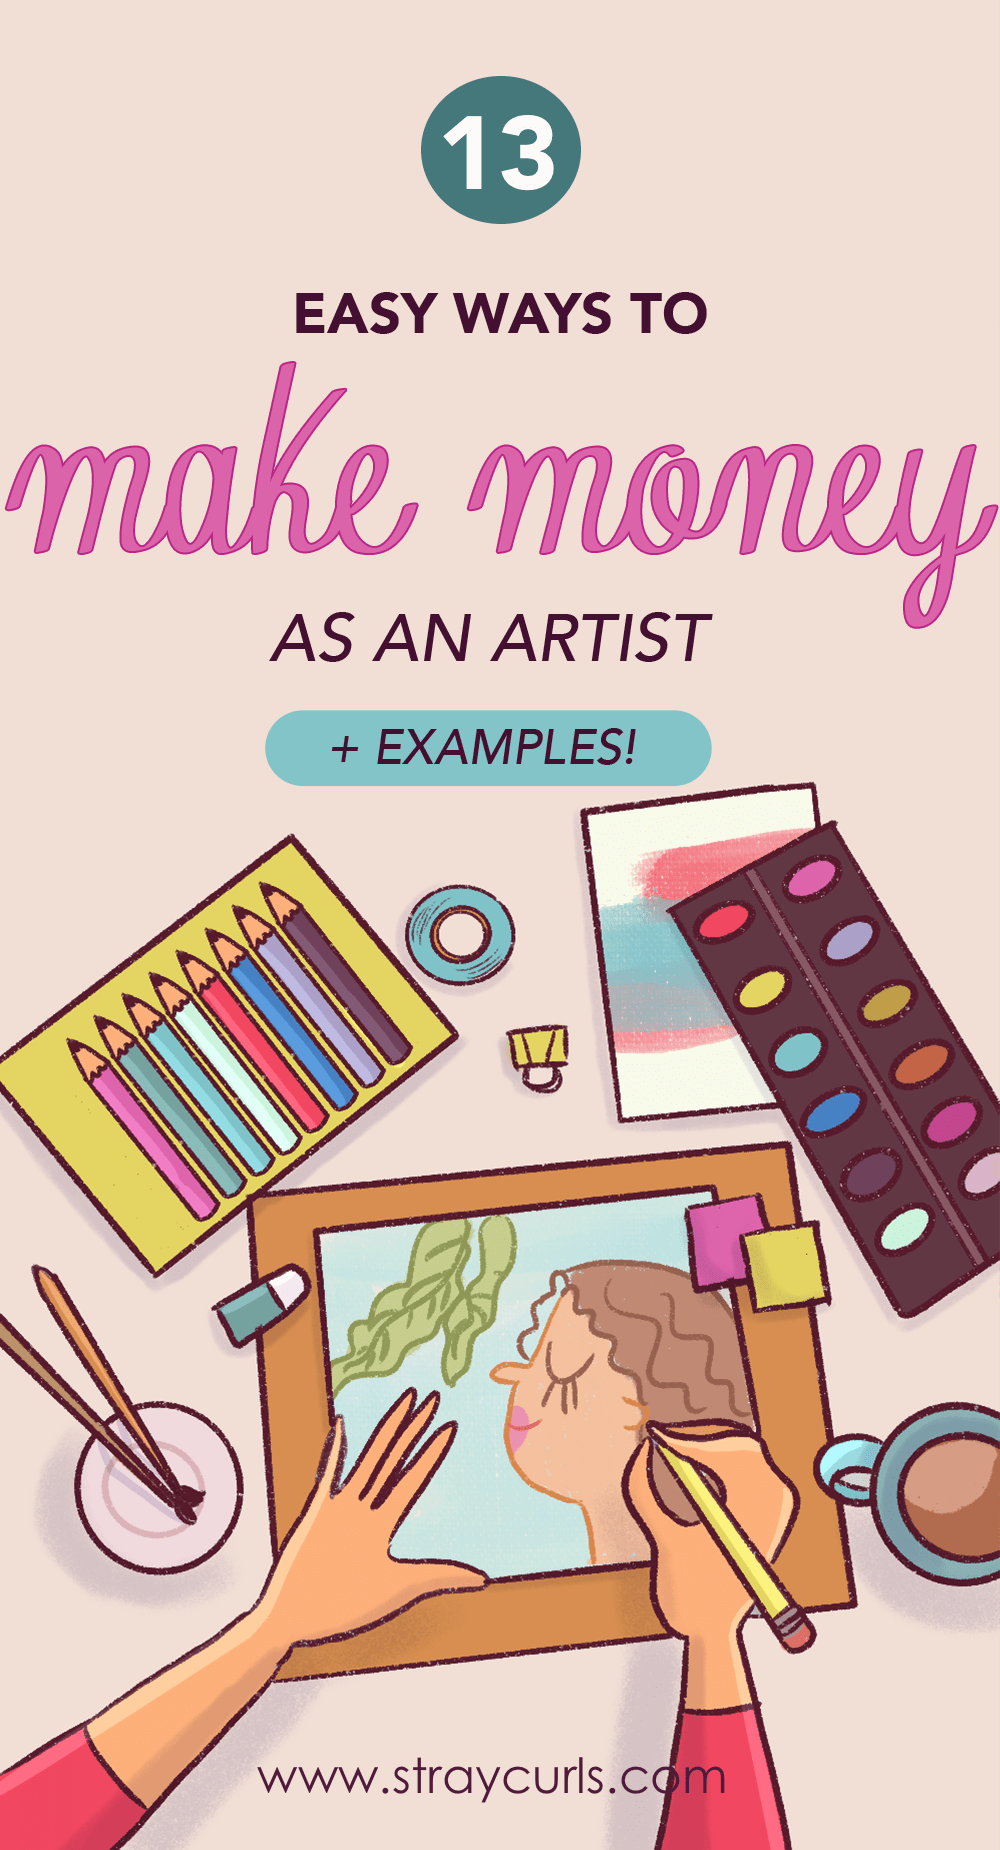 This post includes several ways to make money as an artist. I've also included examples of other artists and how they make money with their art.